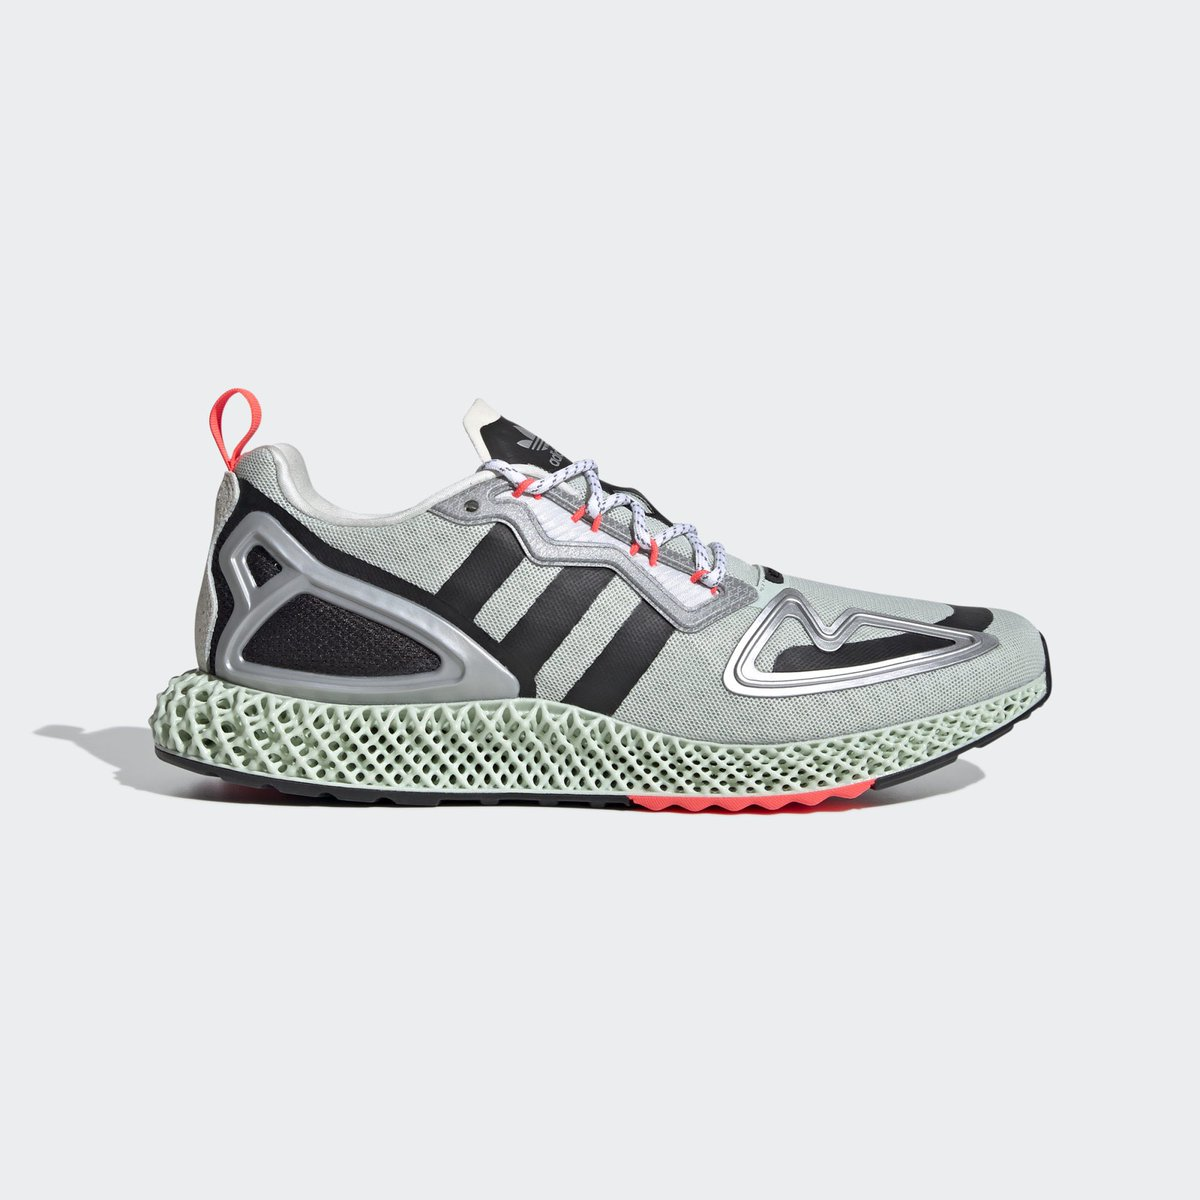 LIVE in 25mins via @adidasUS: adidas ZX 2K 4D 'Cloud White/Signal Pink'  https://t.co/W1mHeE5iob  #AD https://t.co/77ATs987sv